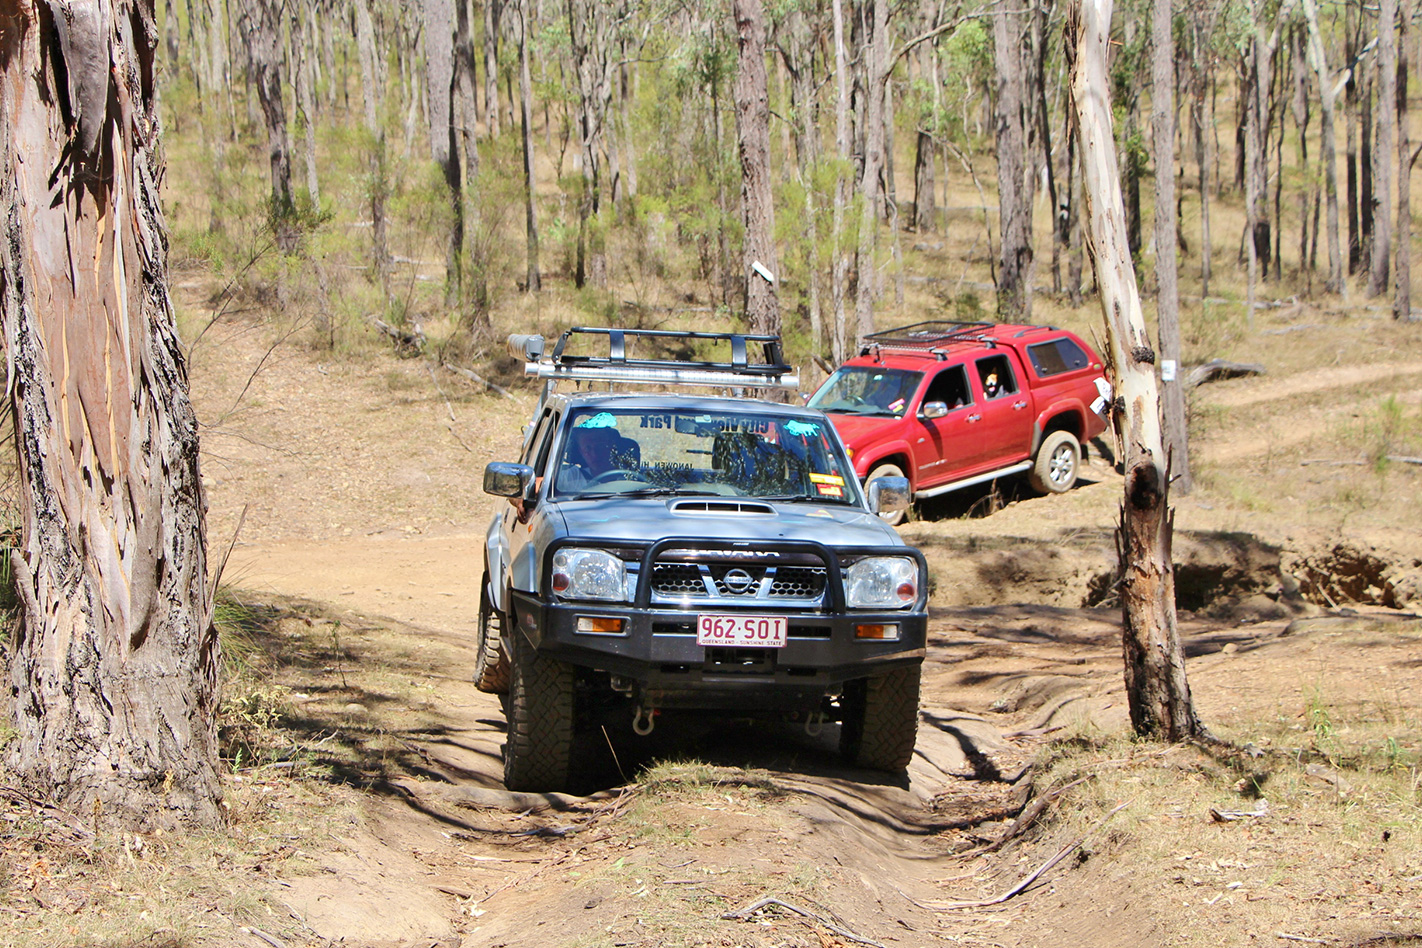 The Springs 4X4 Adventure Park offroading